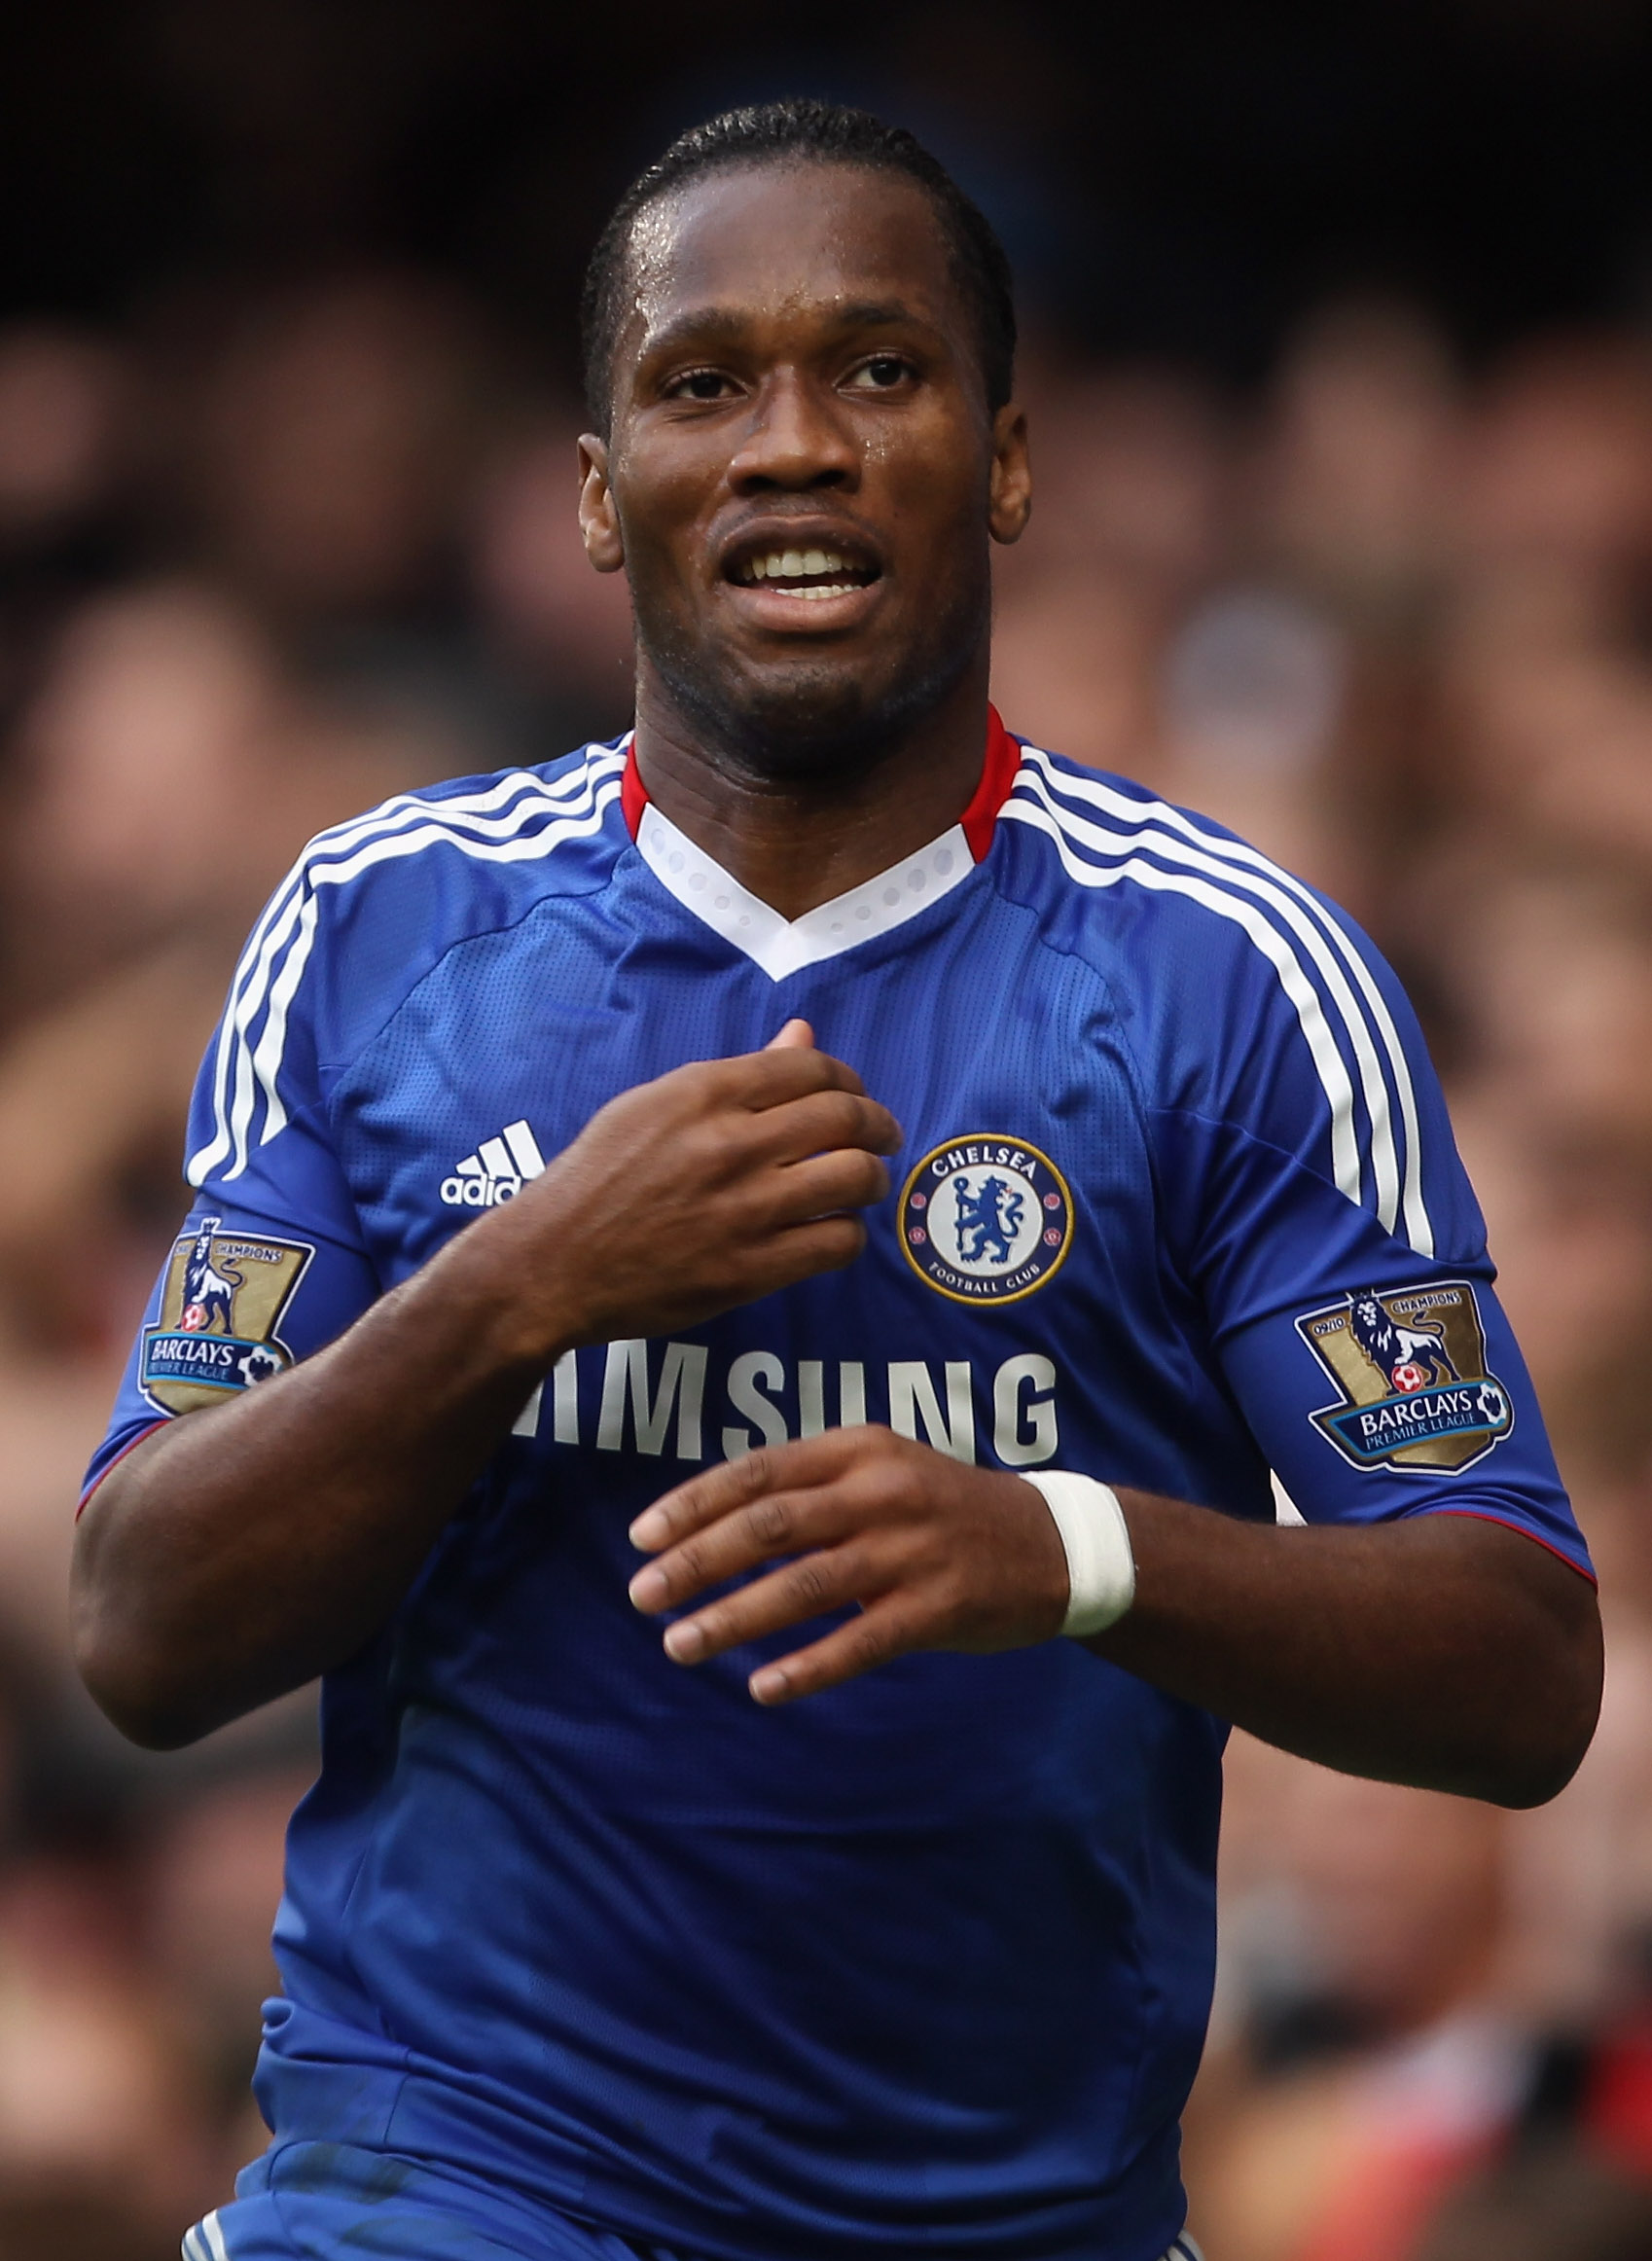 LONDON, ENGLAND - OCTOBER 03:  Didier Drogba of Chelsea celebrates scoring during the Barclays Premier League match between Chelsea and Arsenal at Stamford Bridge on October 3, 2010 in London, England.  (Photo by Bryn Lennon/Getty Images)